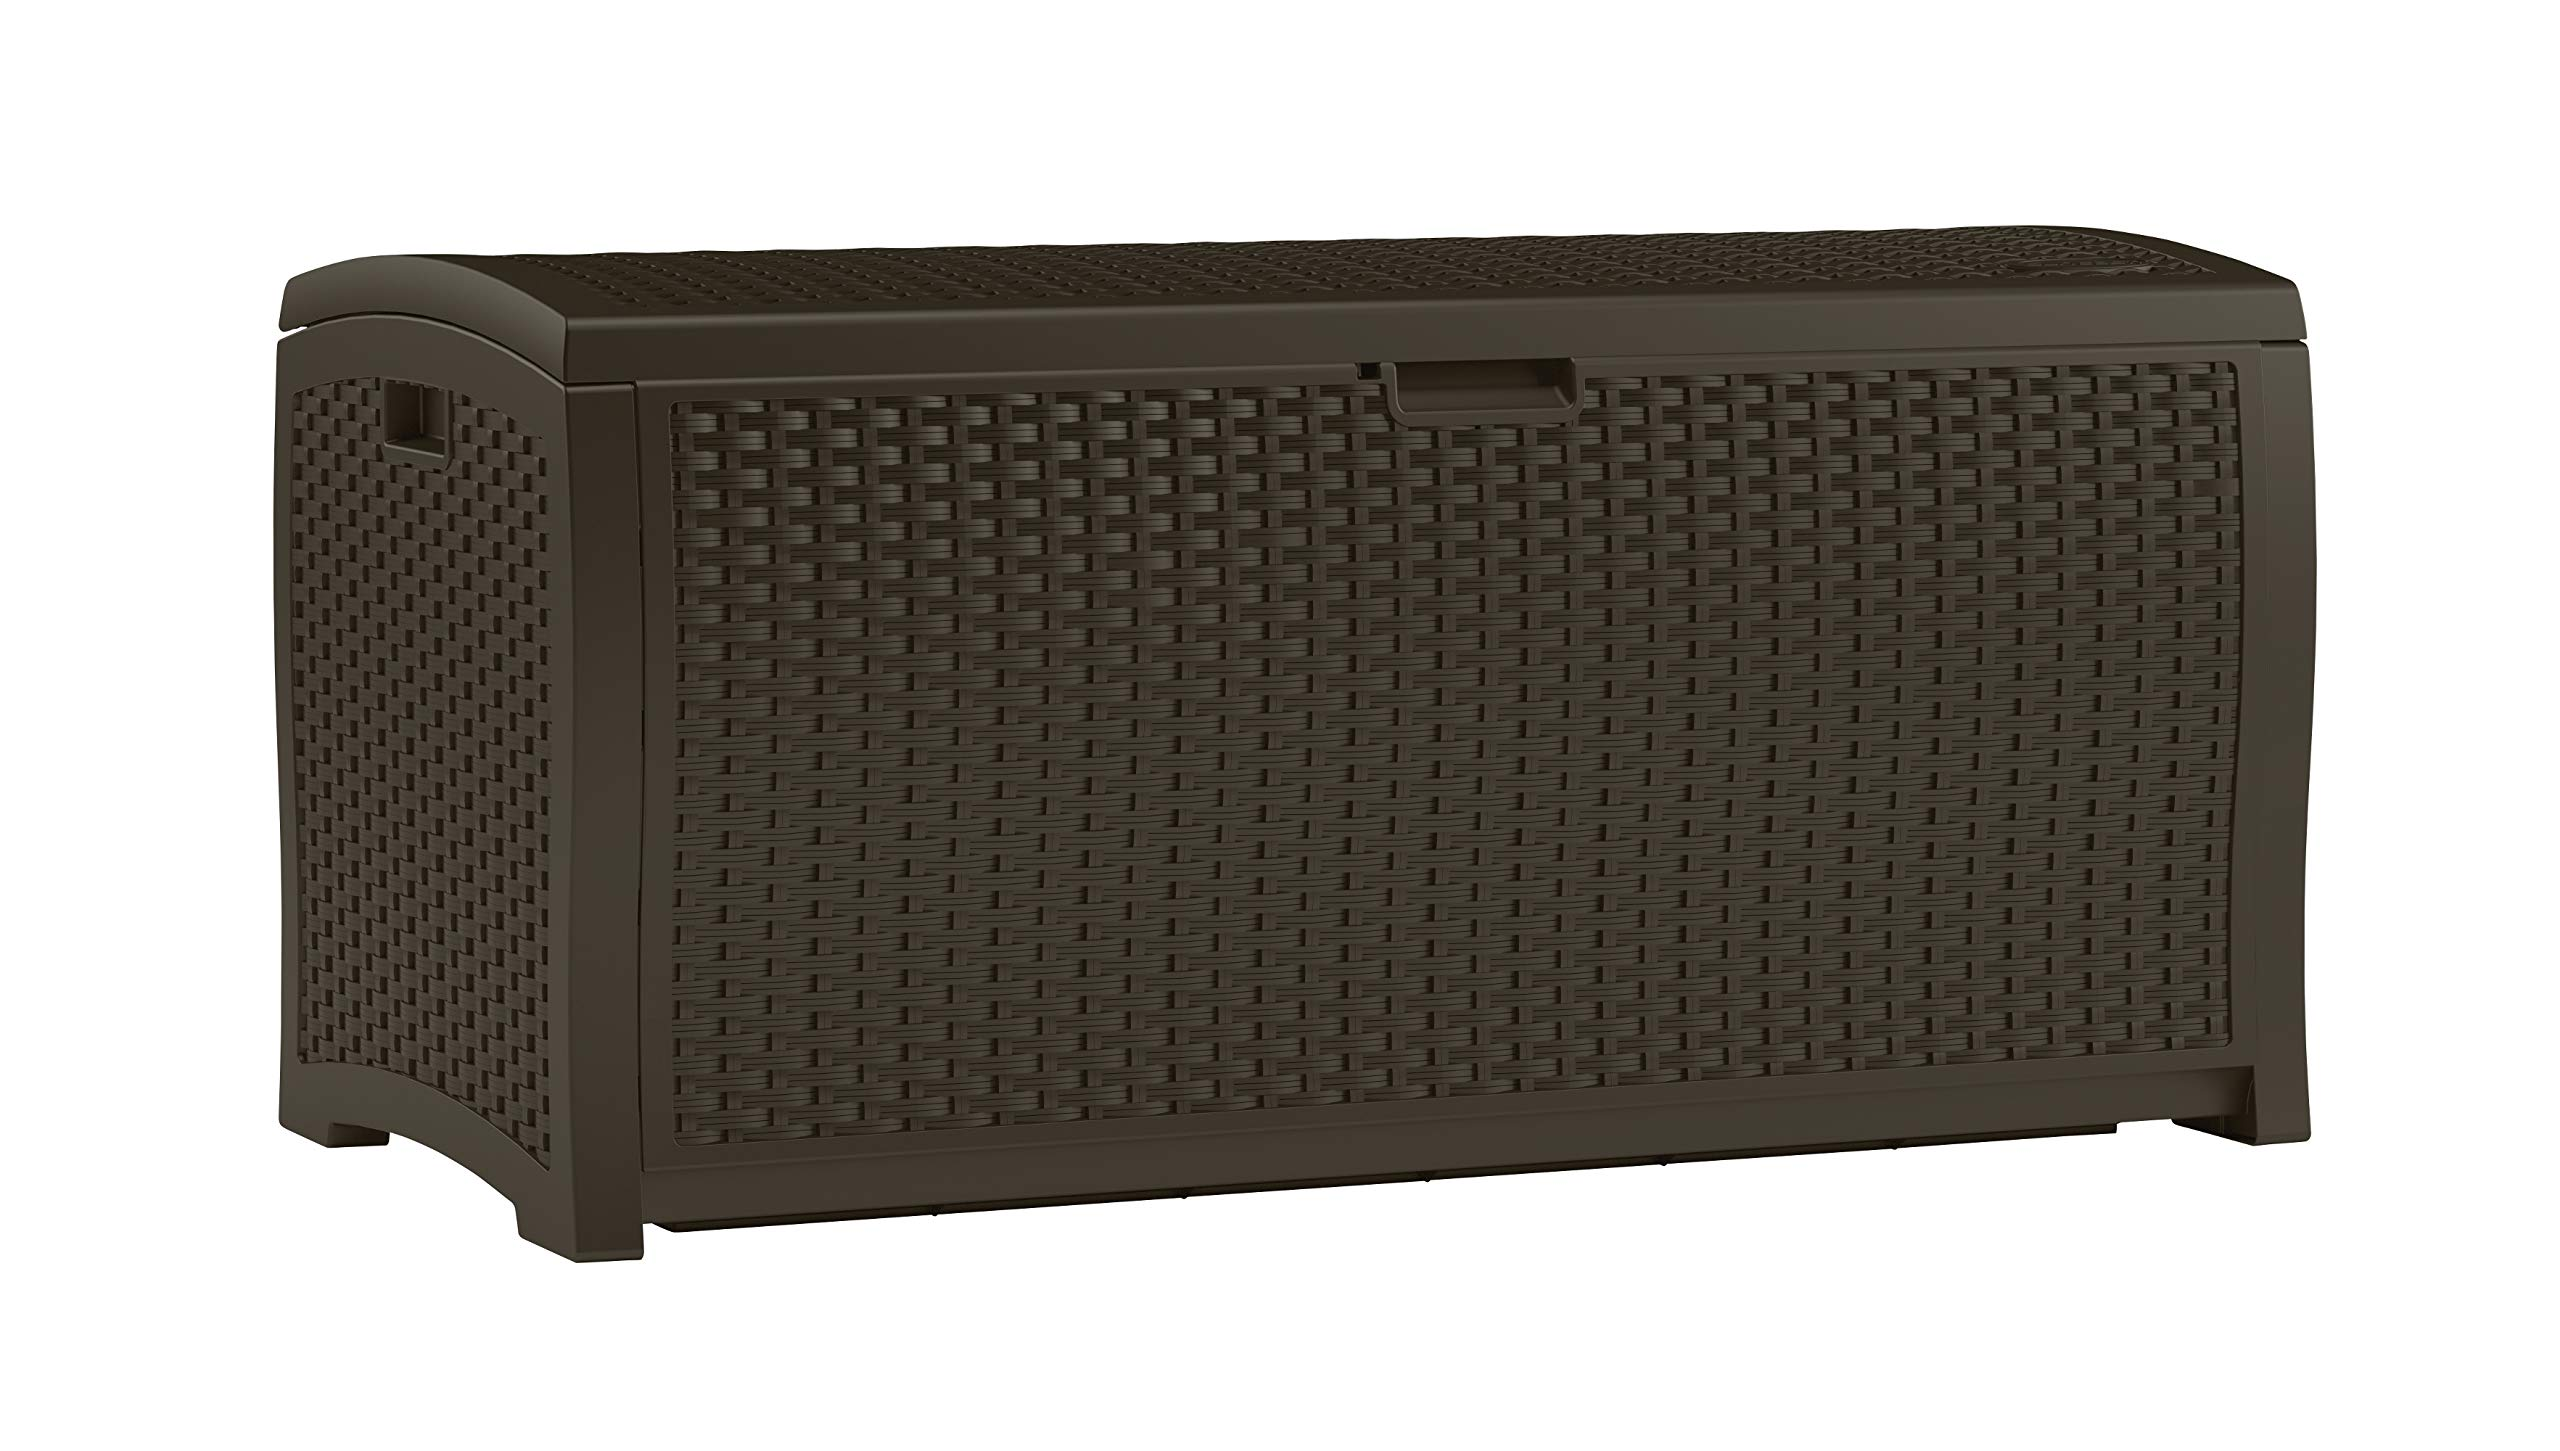 Suncast 99 Gallon Resin Wicker Patio Storage Box - Waterproof Outdoor Storage Container for Toys, Furniture, Yard Tools - Store Items on Deck, Porch, Backyard - Mocha